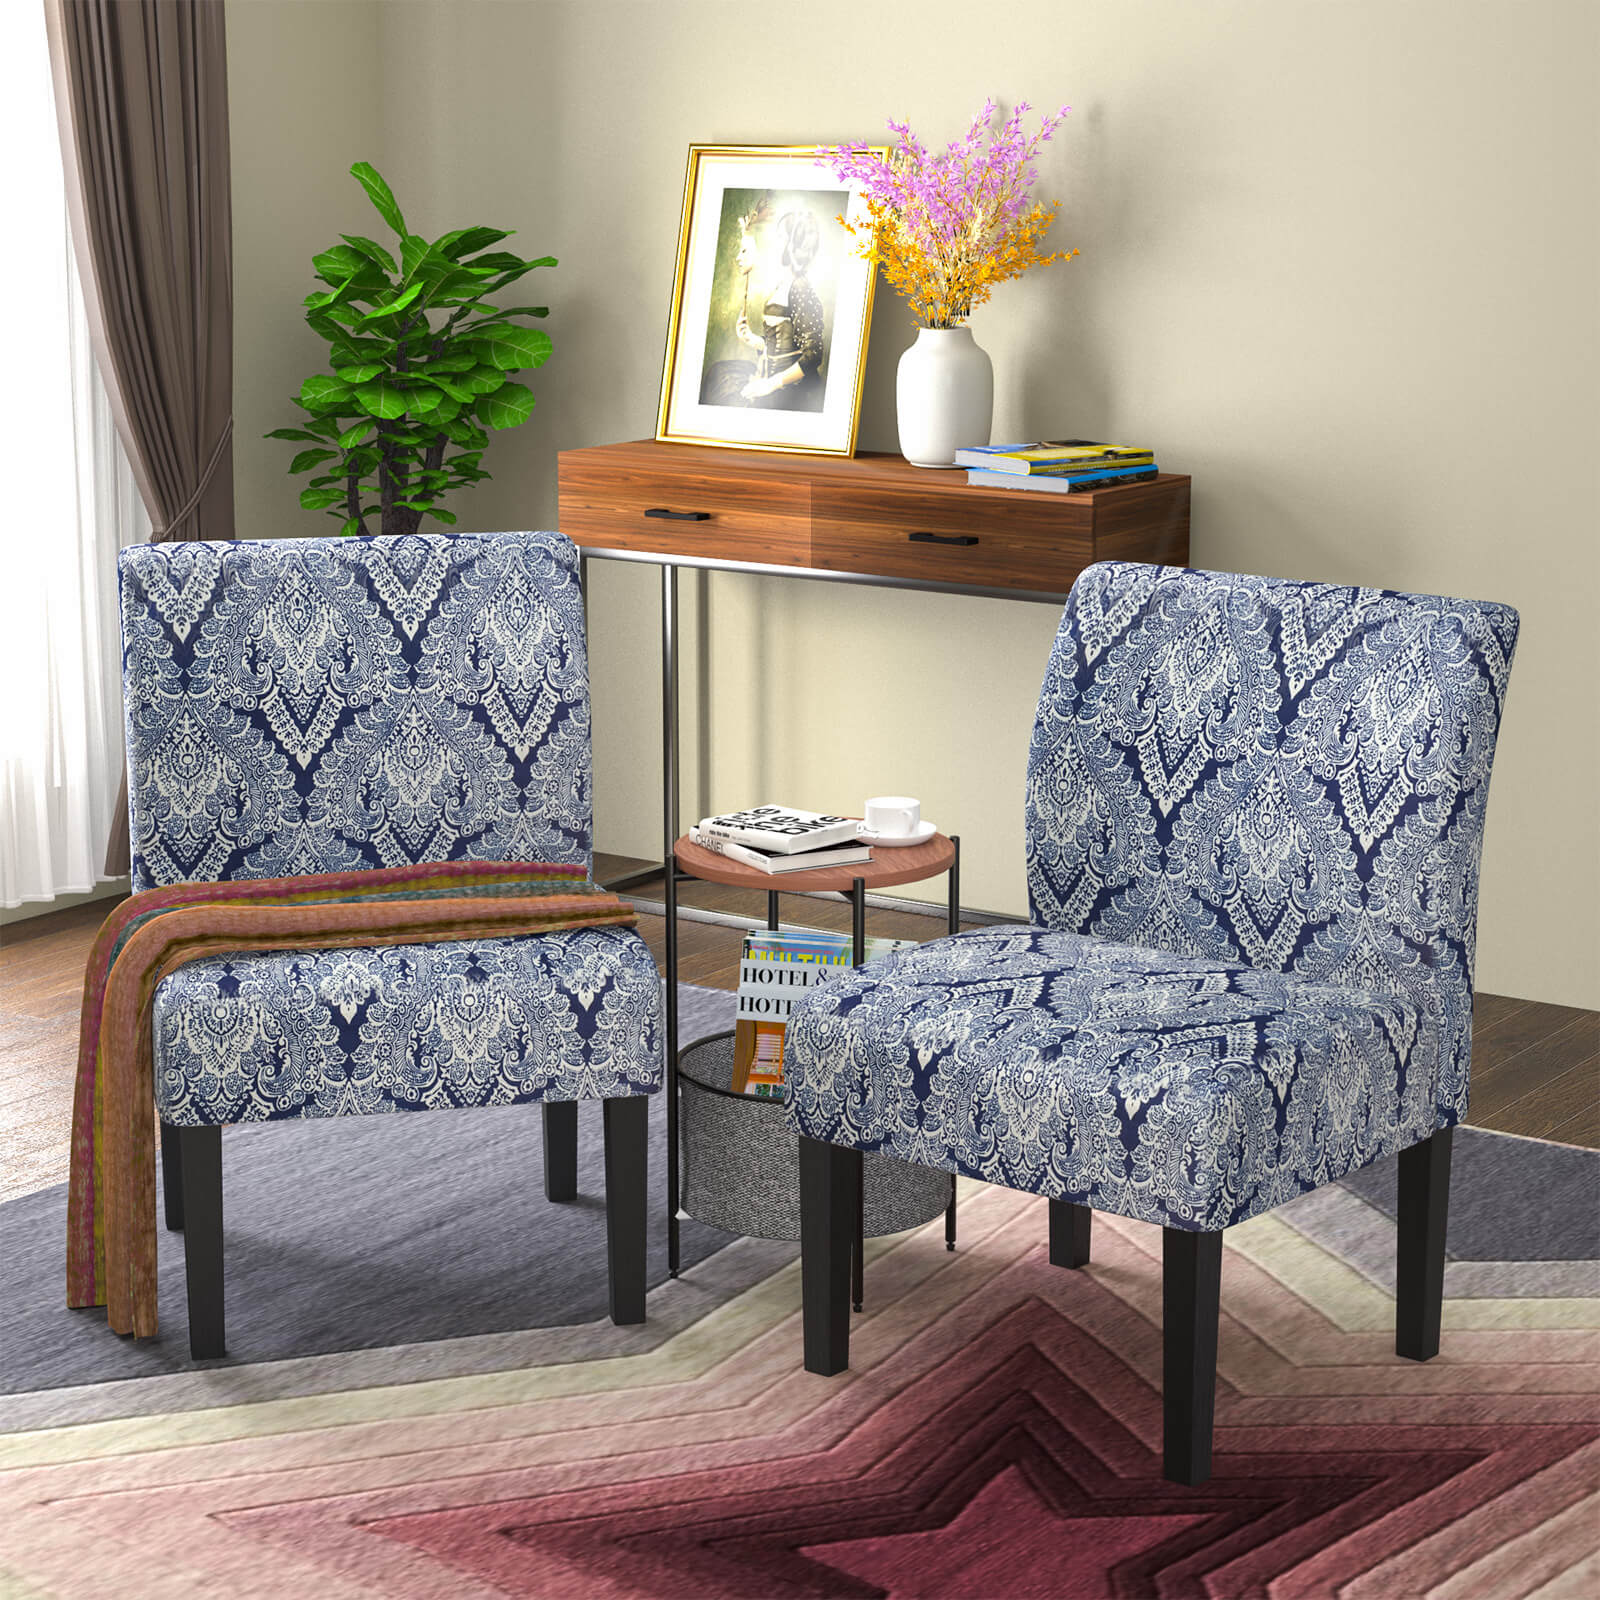 Picture of: Mecor Modern Armless Accent Chairs Set Of 2 Upholstered Fabric Dining Chairs W Solid Wood Legs For Dining Living Room Sofa Sapphire Walmart Com Walmart Com